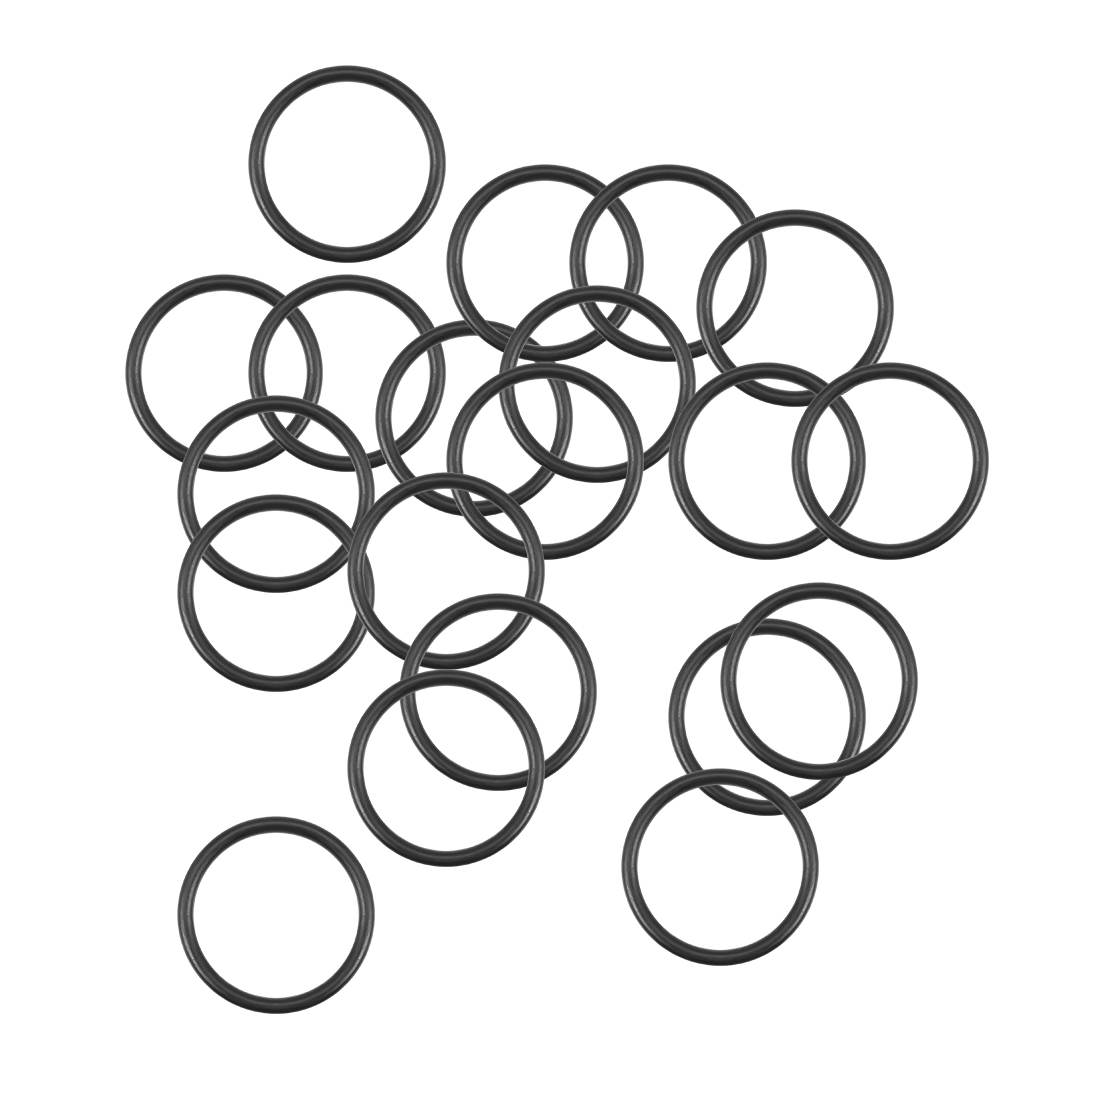 O-Rings Nitrile Rubber 15.2mm x 18.8mm x 1.8mm Round Seal Gasket 20Pcs